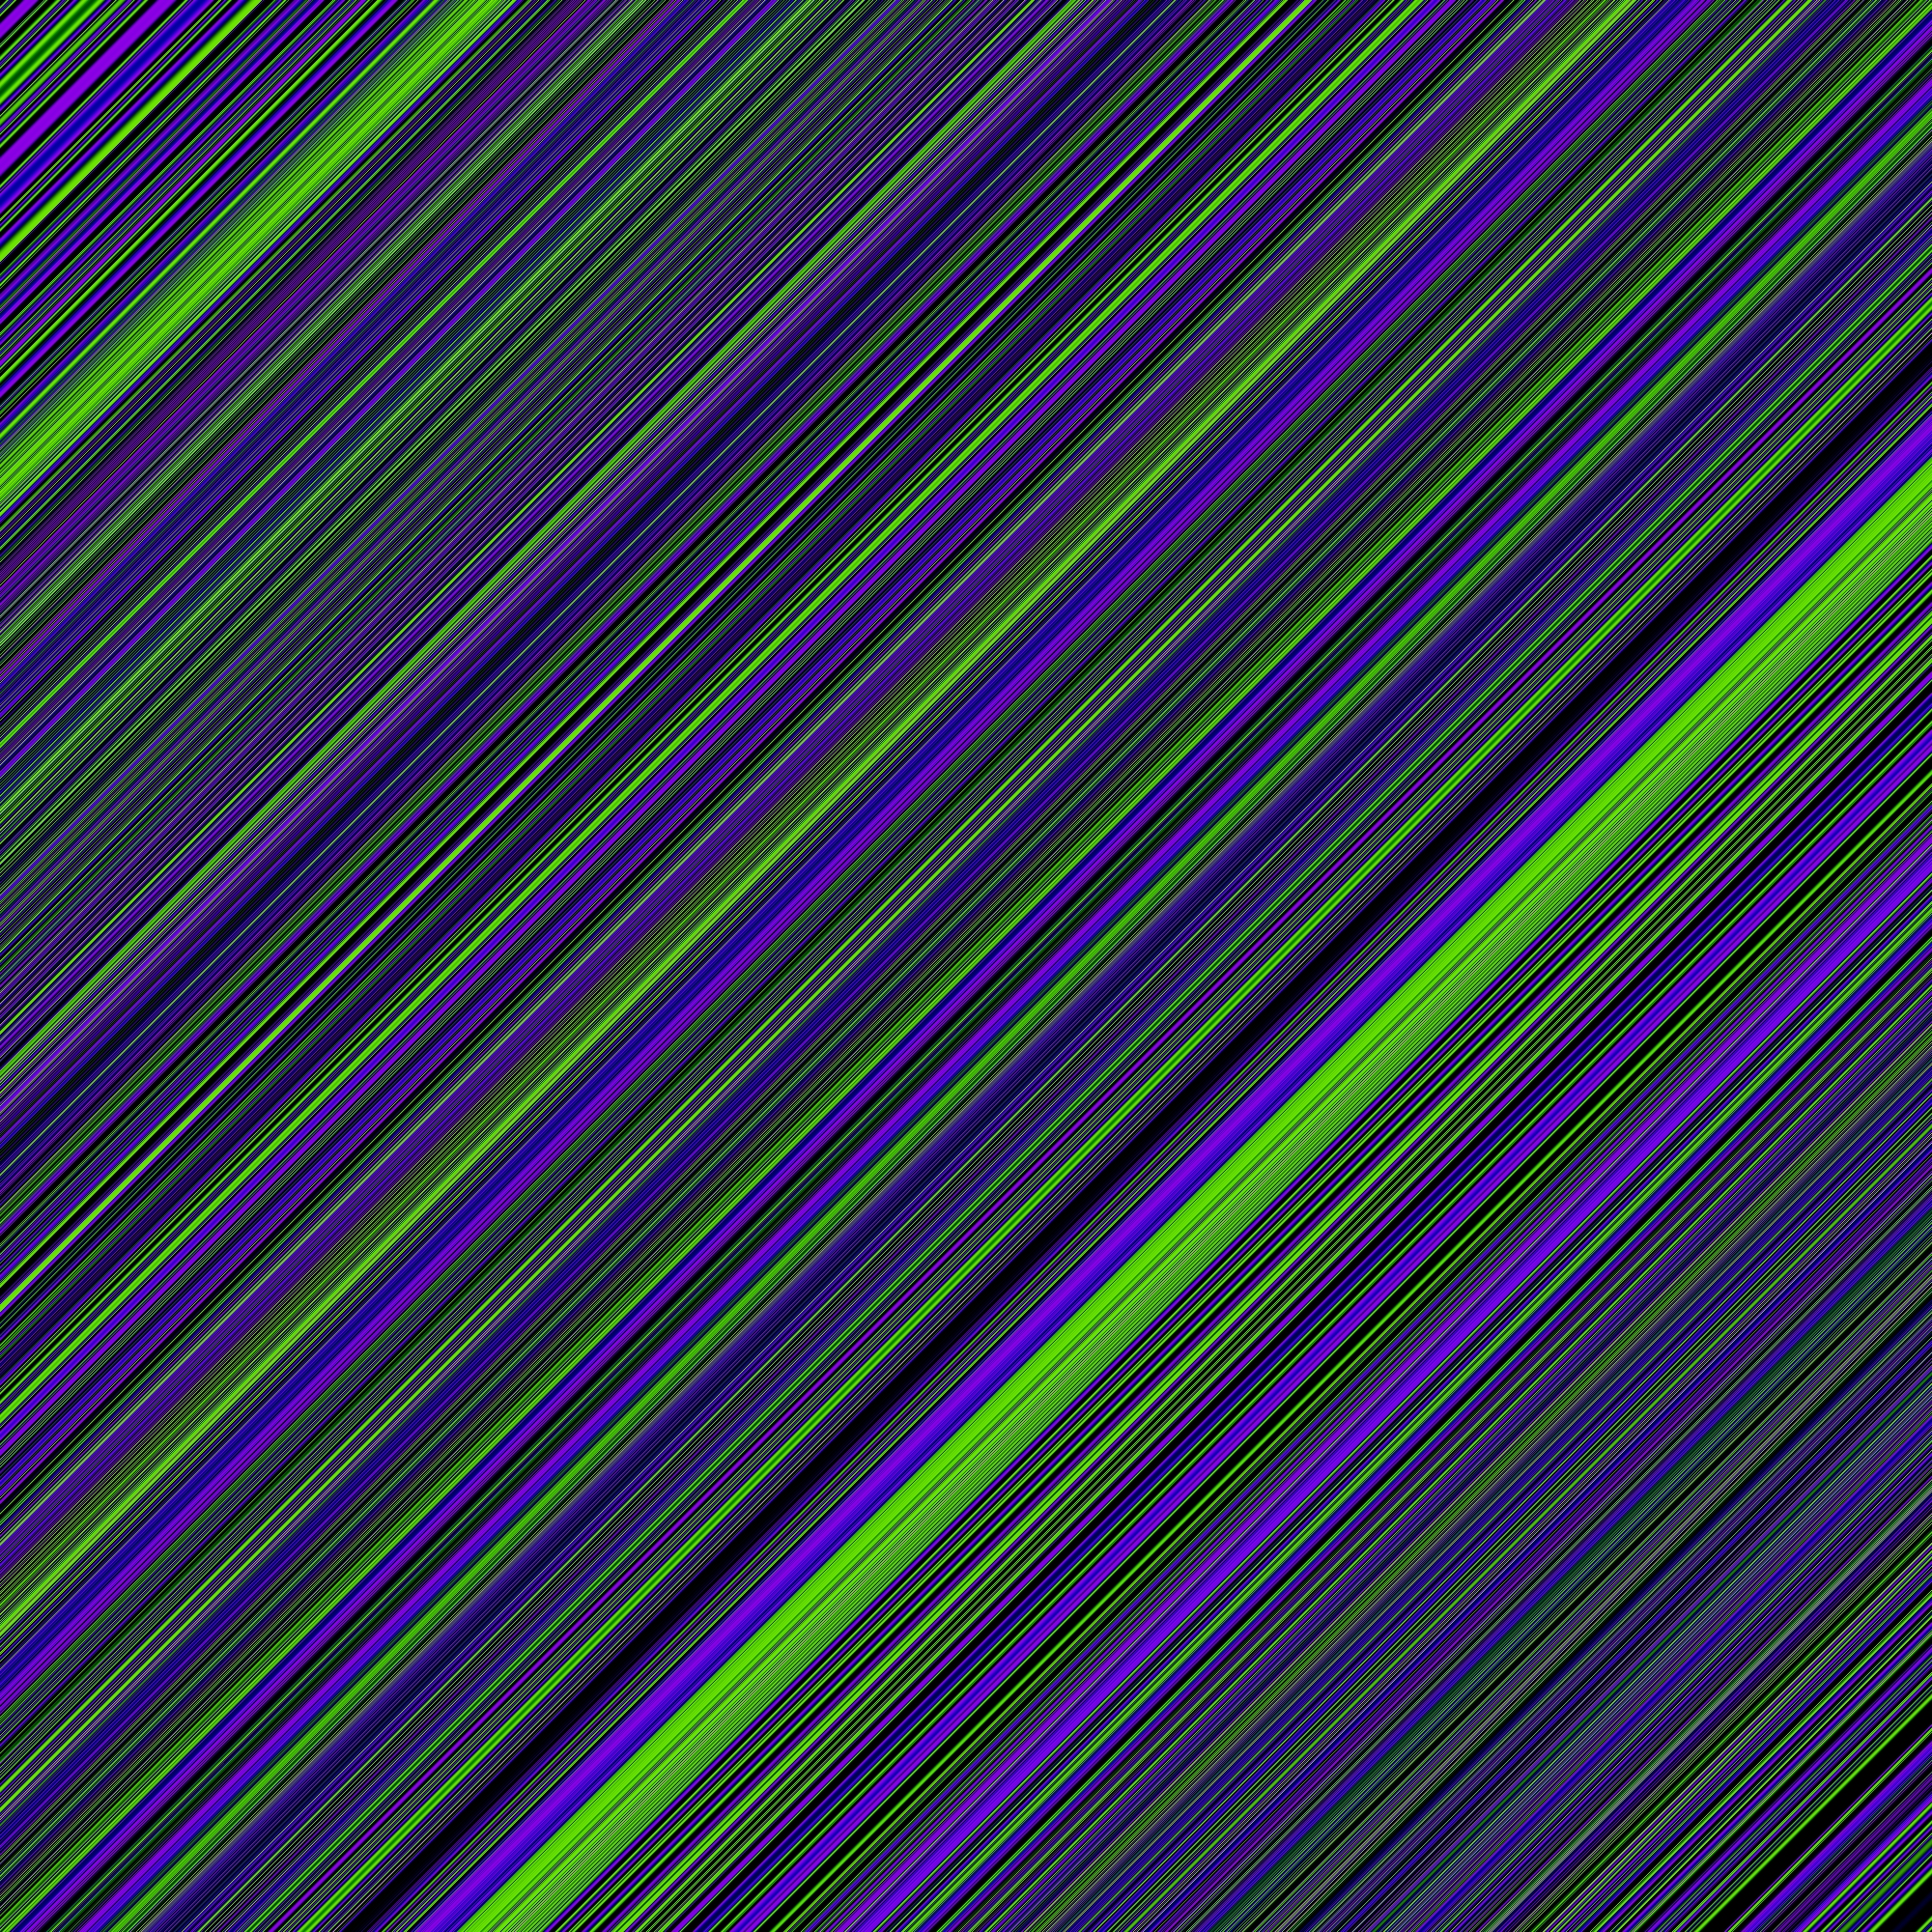 106842 free download Green wallpapers for phone, Textures, Texture, Lines, Obliquely, Purple, Violet Green images and screensavers for mobile